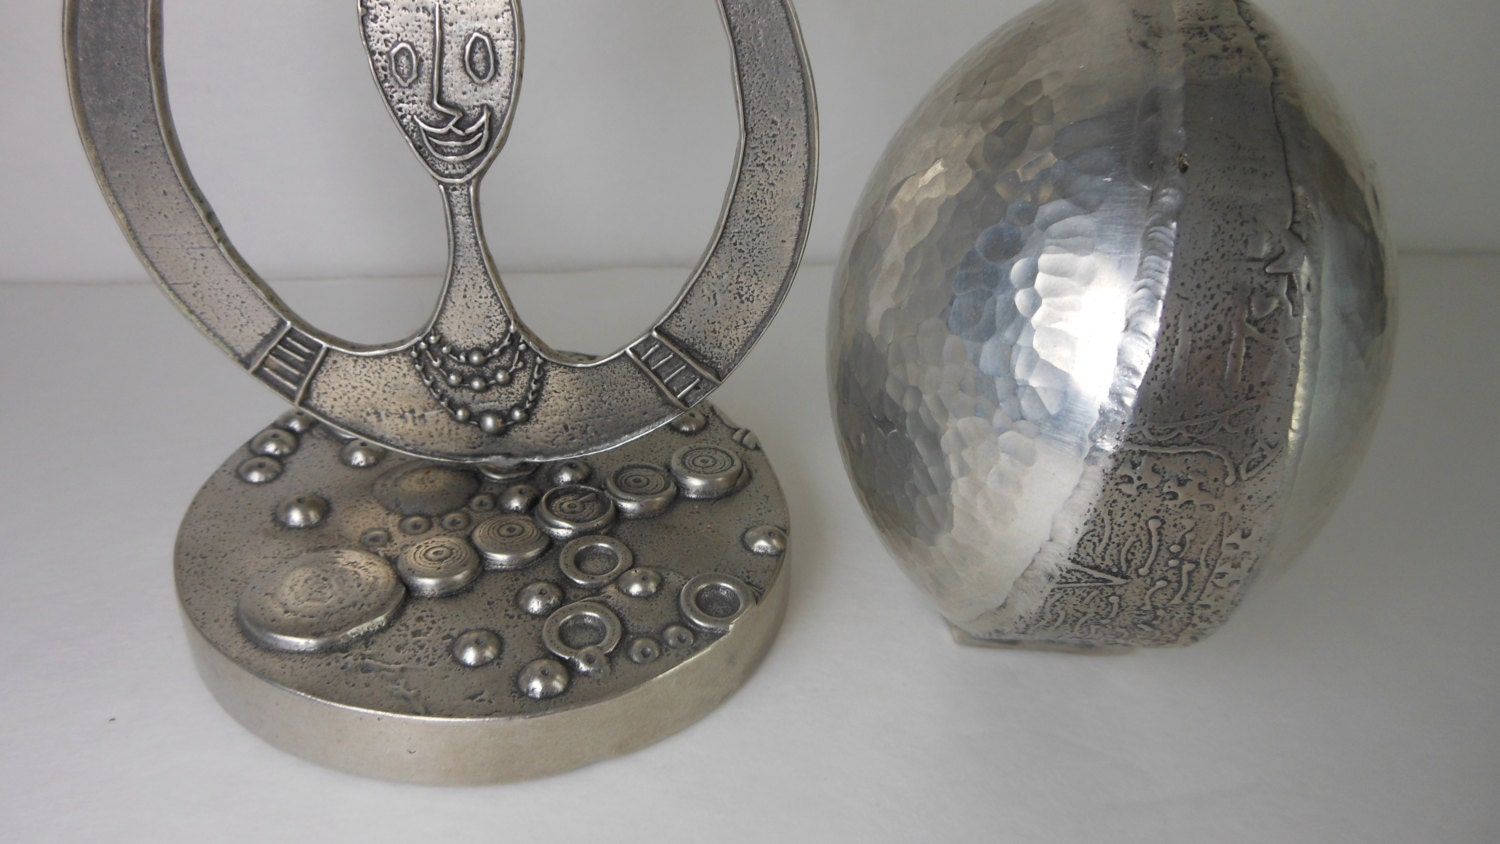 2 Modern Oil Lamps Art Objects Artisan Made Pewter 1980s